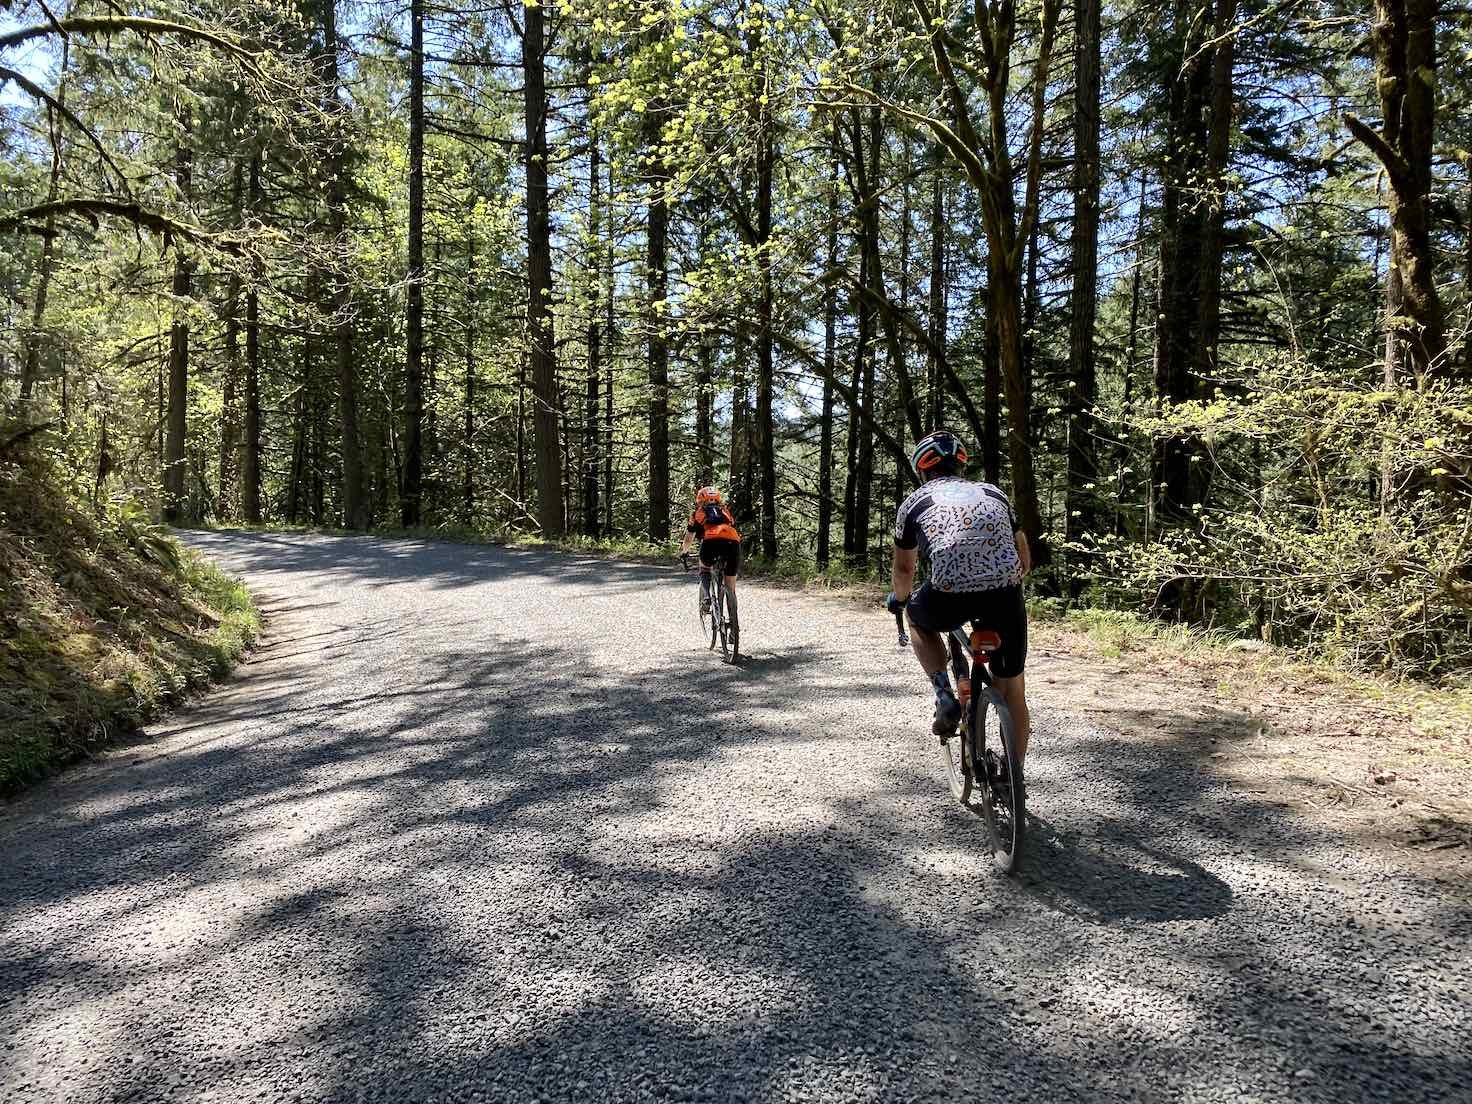 Cyclists descending on paved road through the woods.